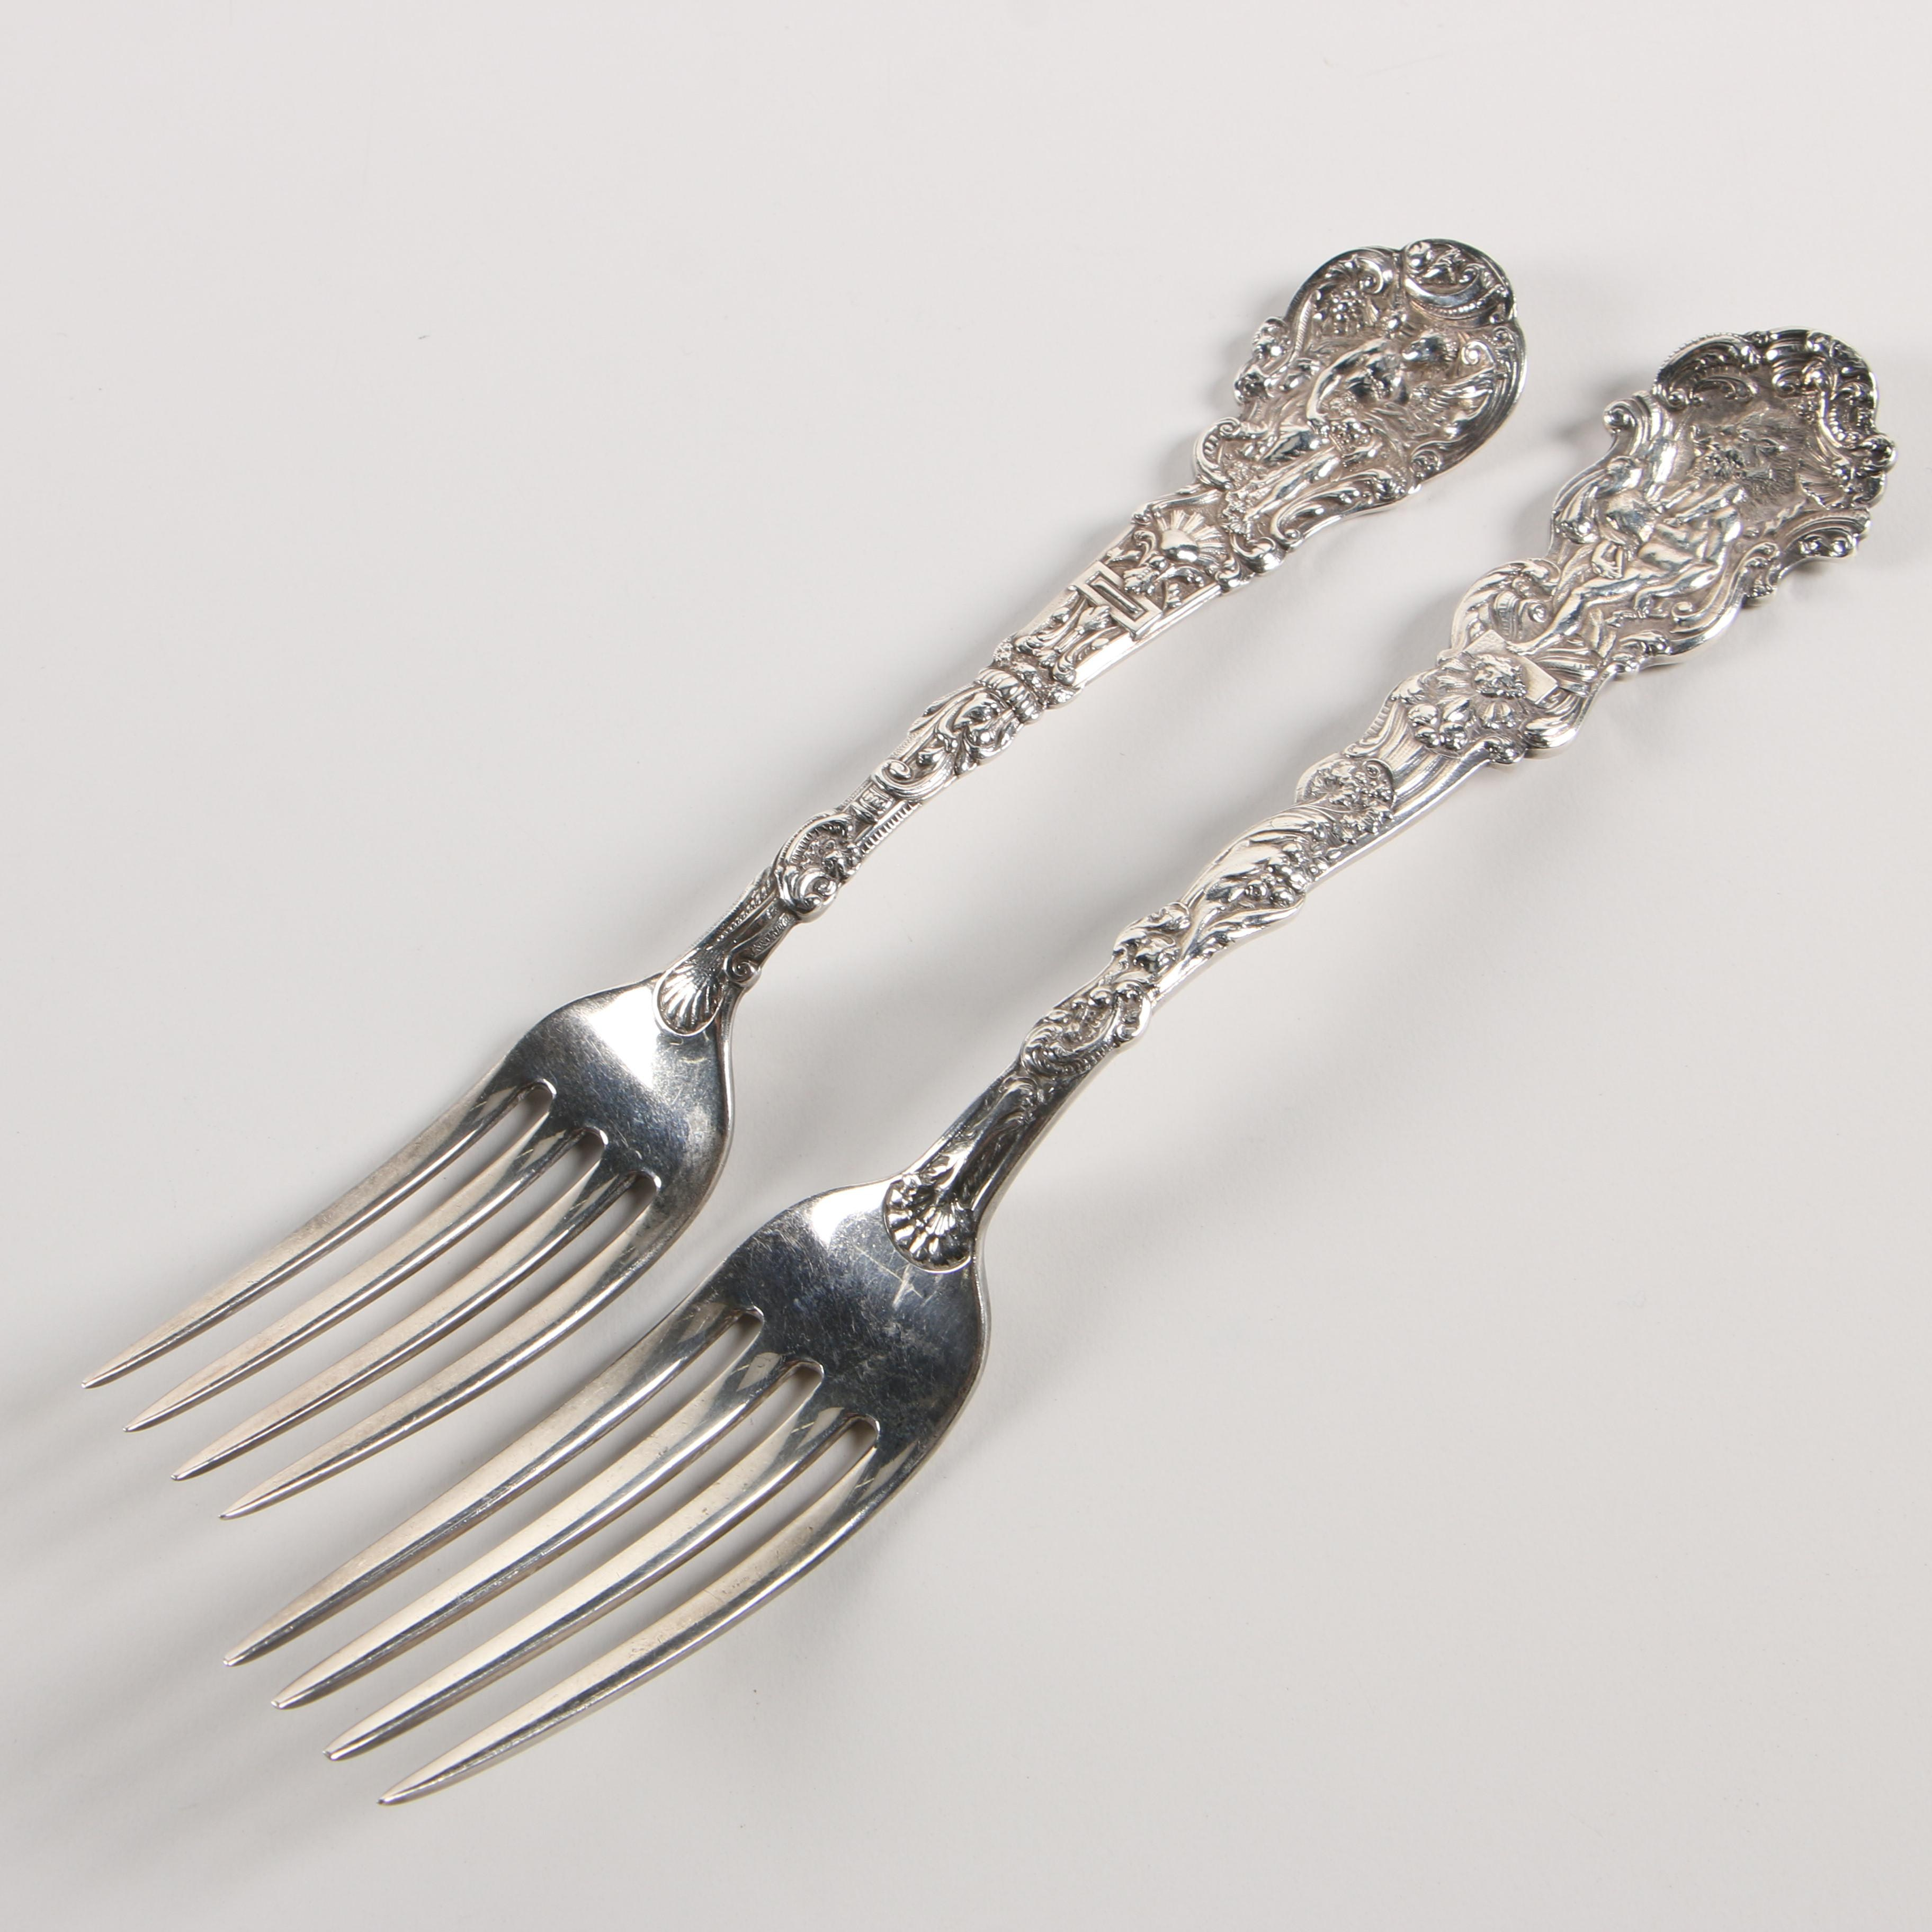 """Gorham """"Versailles"""" Sterling Silver Forks, Late 19th/Early 20th Century"""